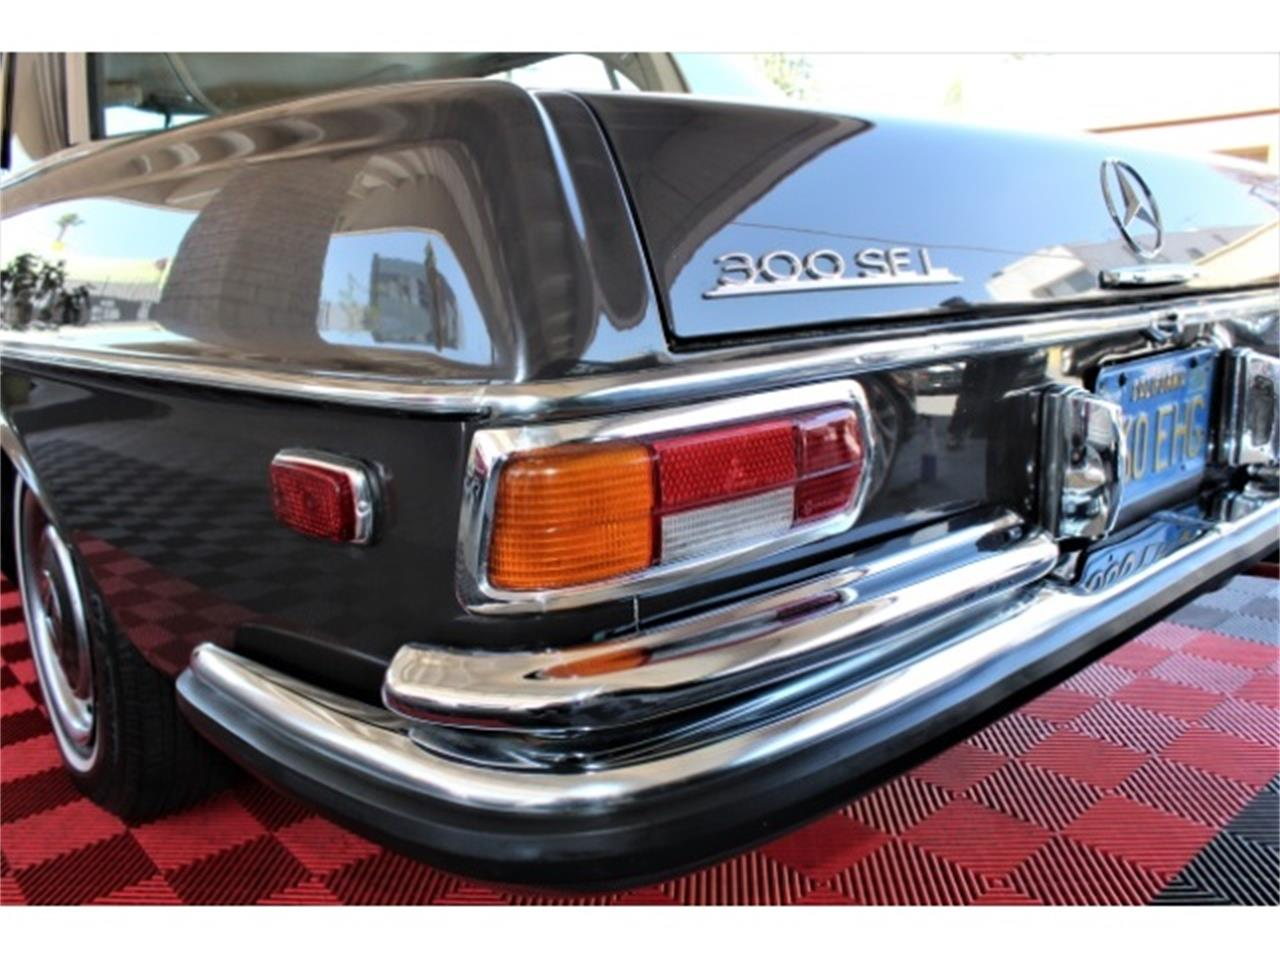 1972 Mercedes-Benz 300SEL for sale in Sherman Oaks, CA – photo 10